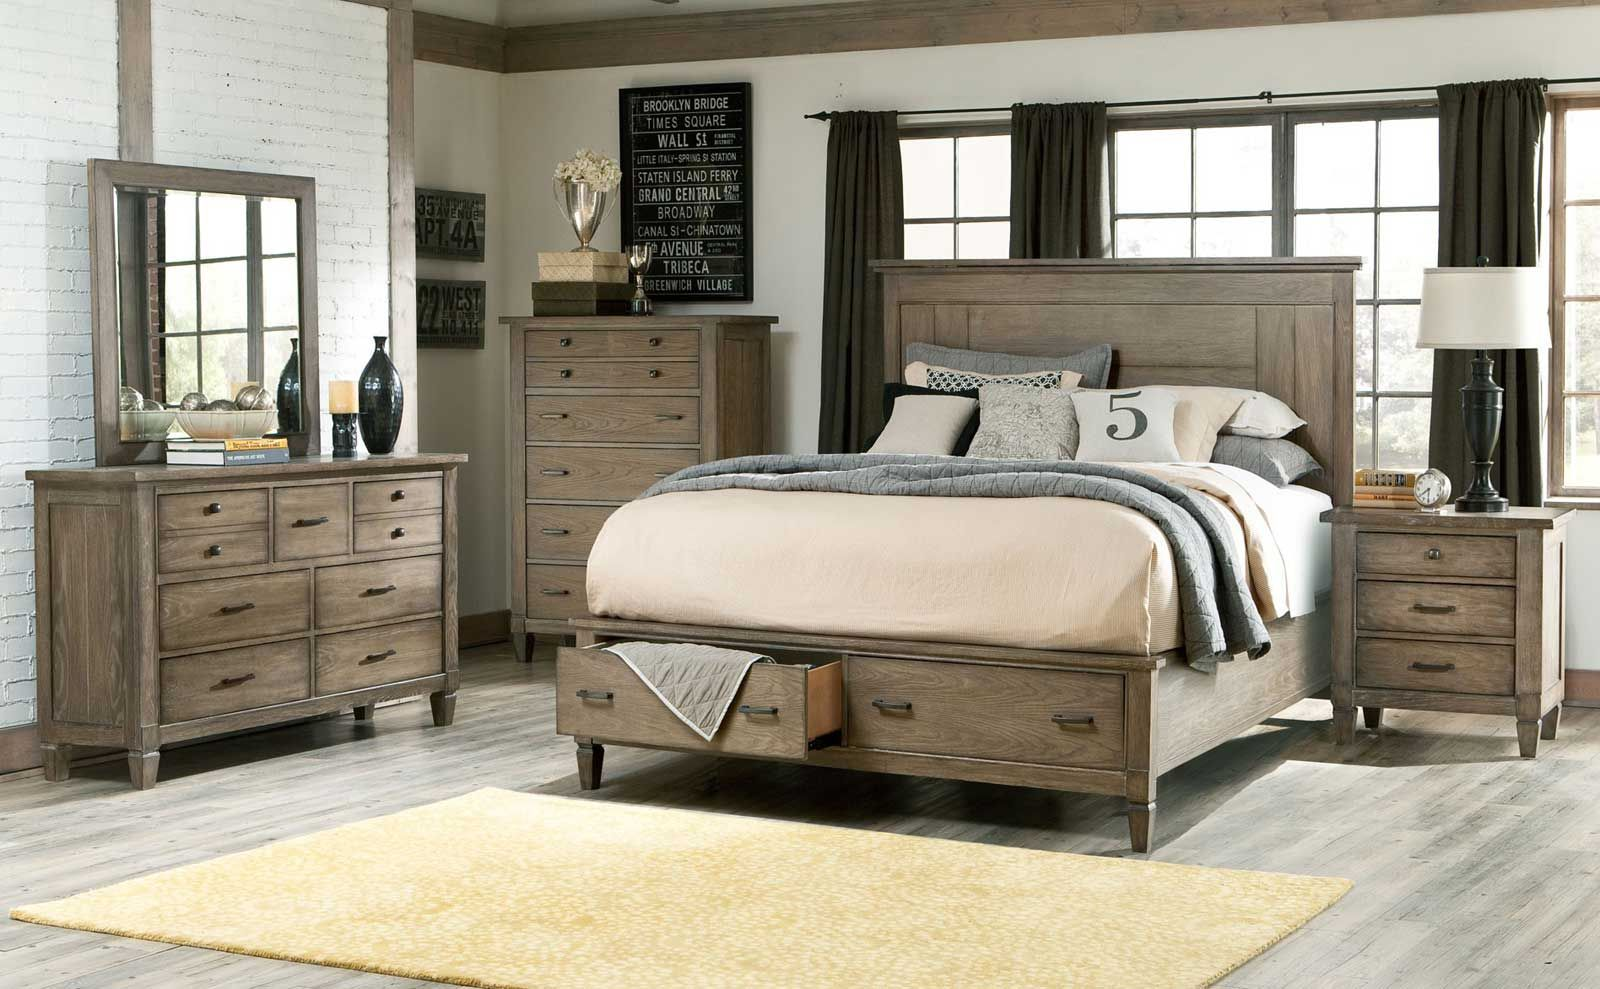 Wood bedroom furniture sets - Image Result For Wood King Size Bedroom Sets